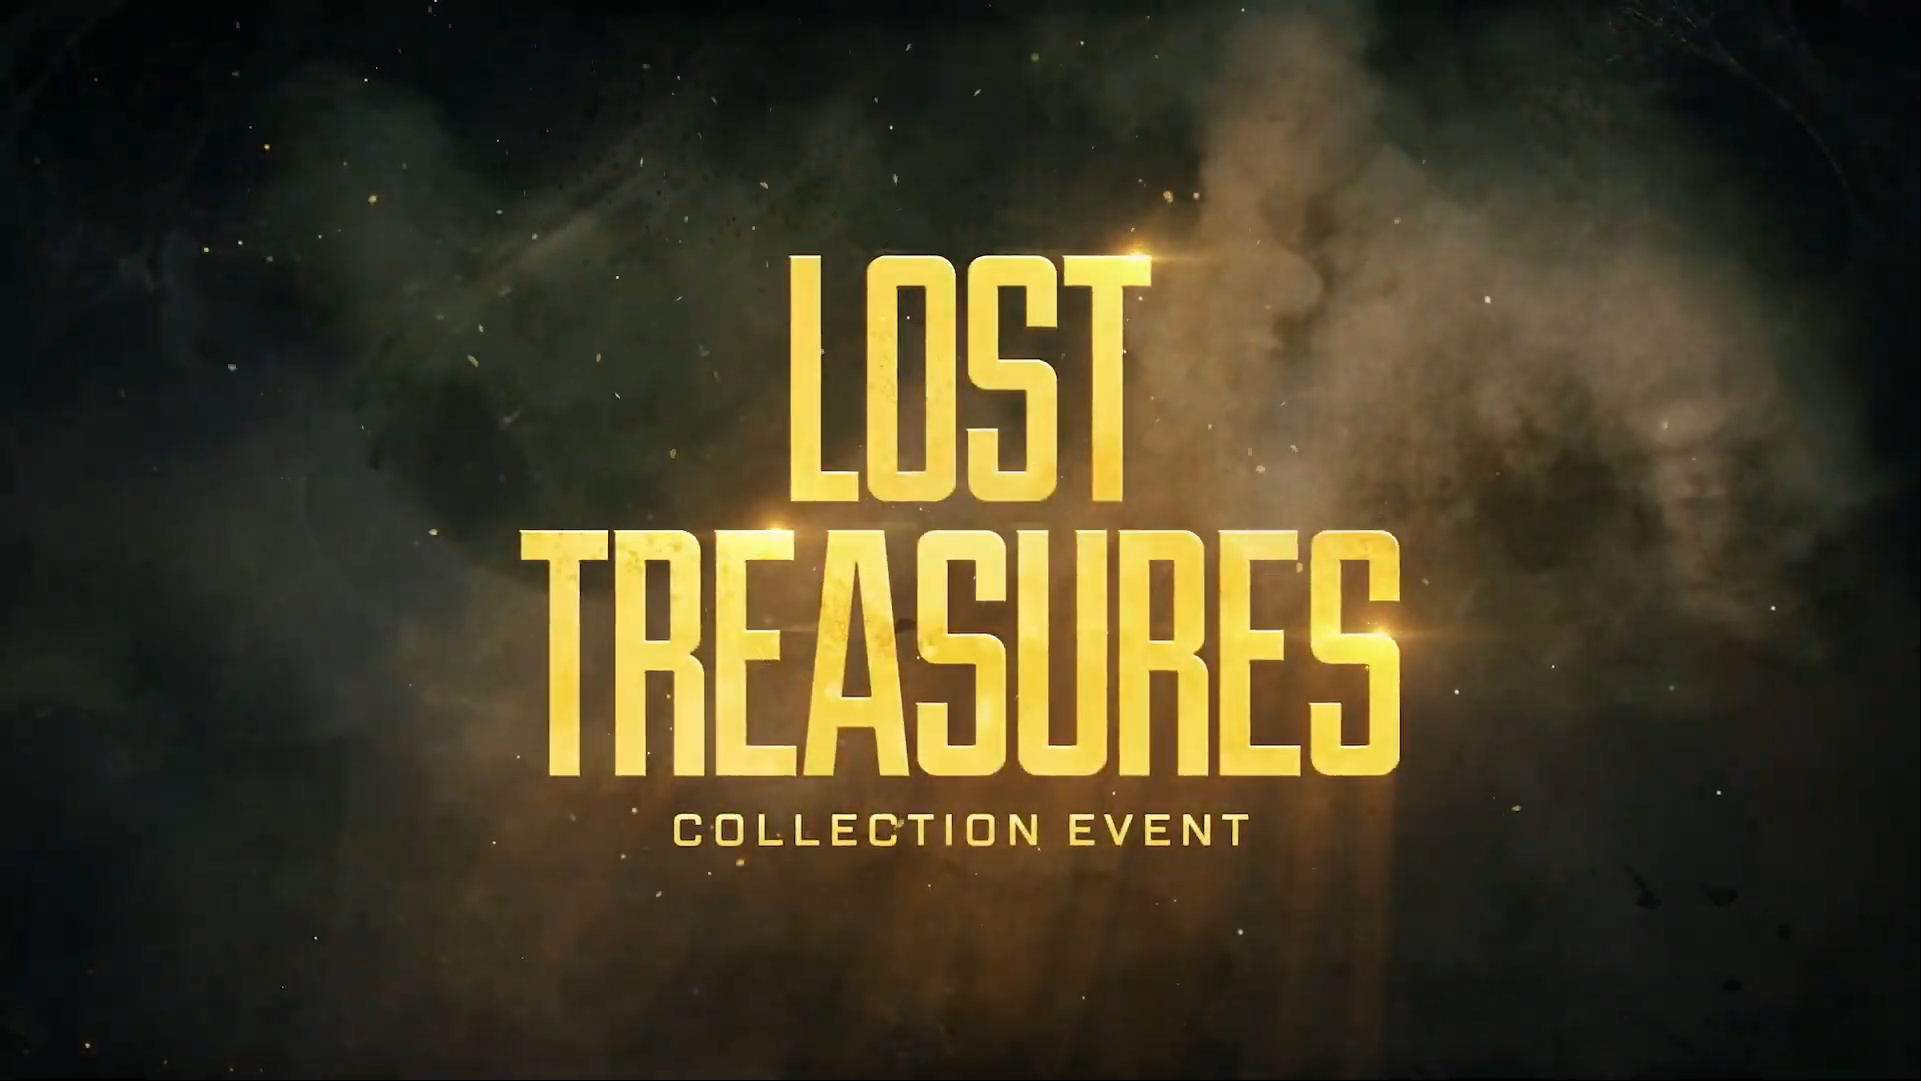 The next Apex Legends collection event, Lost Treasures, will arrive in-game on June 23.